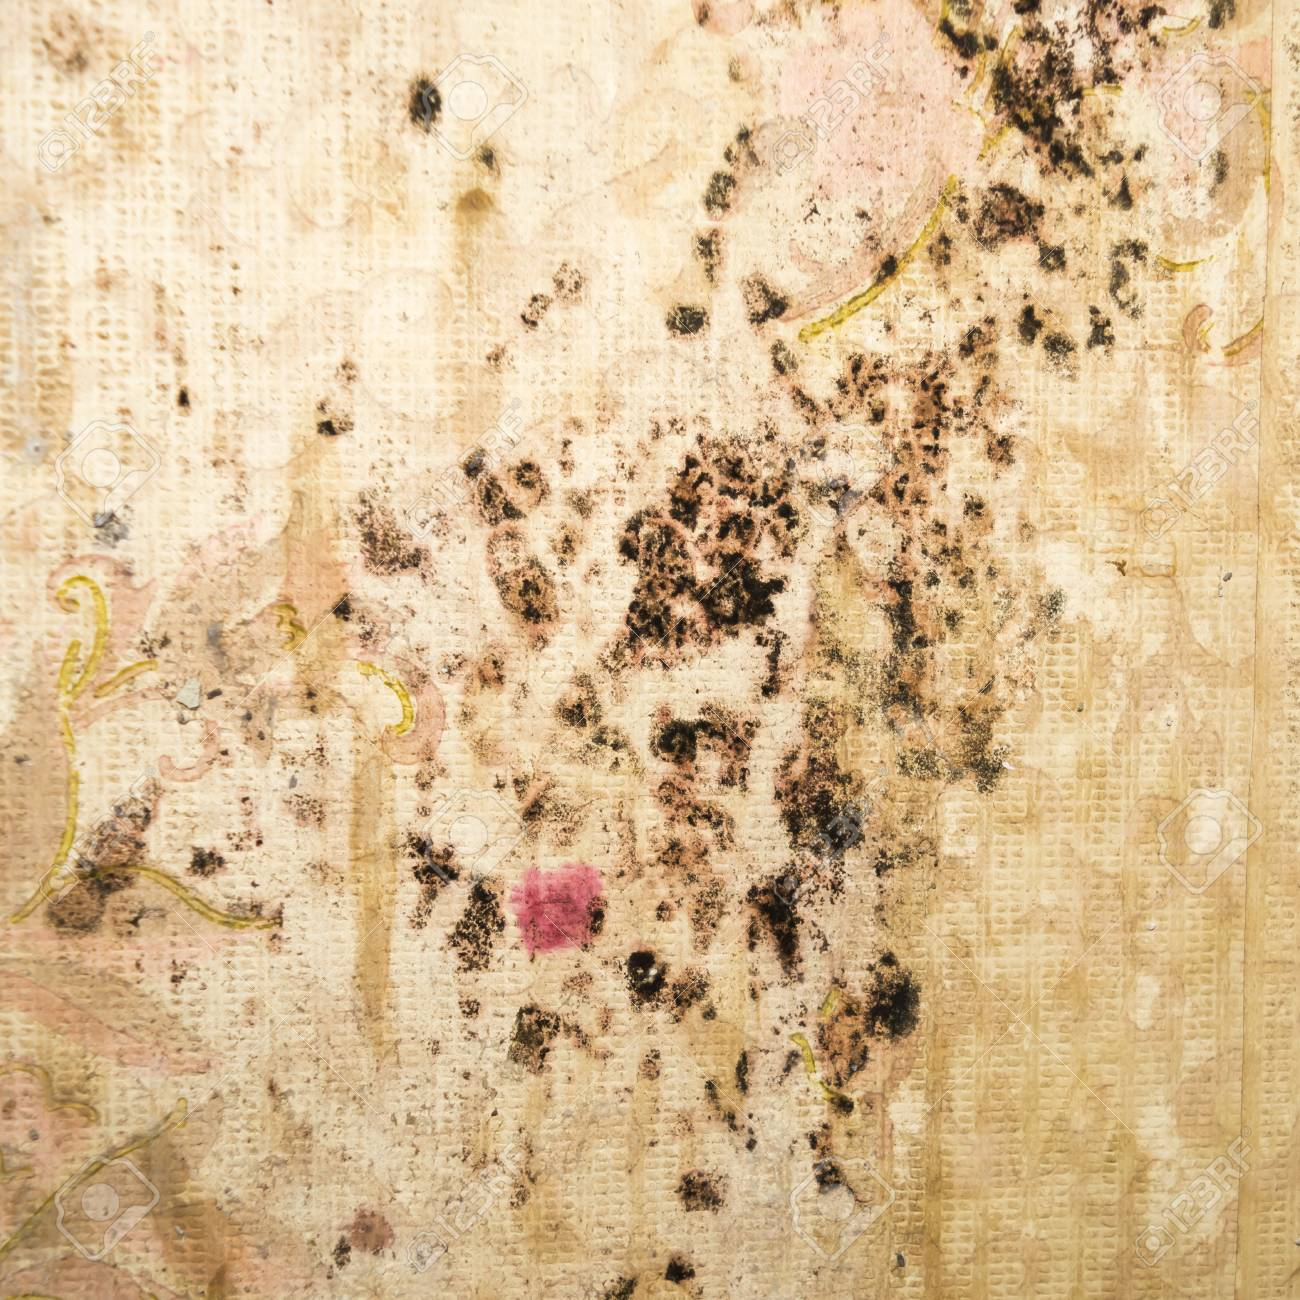 Fungus On Old Wallpaper Stains Of Black Mold The Wall Close Up